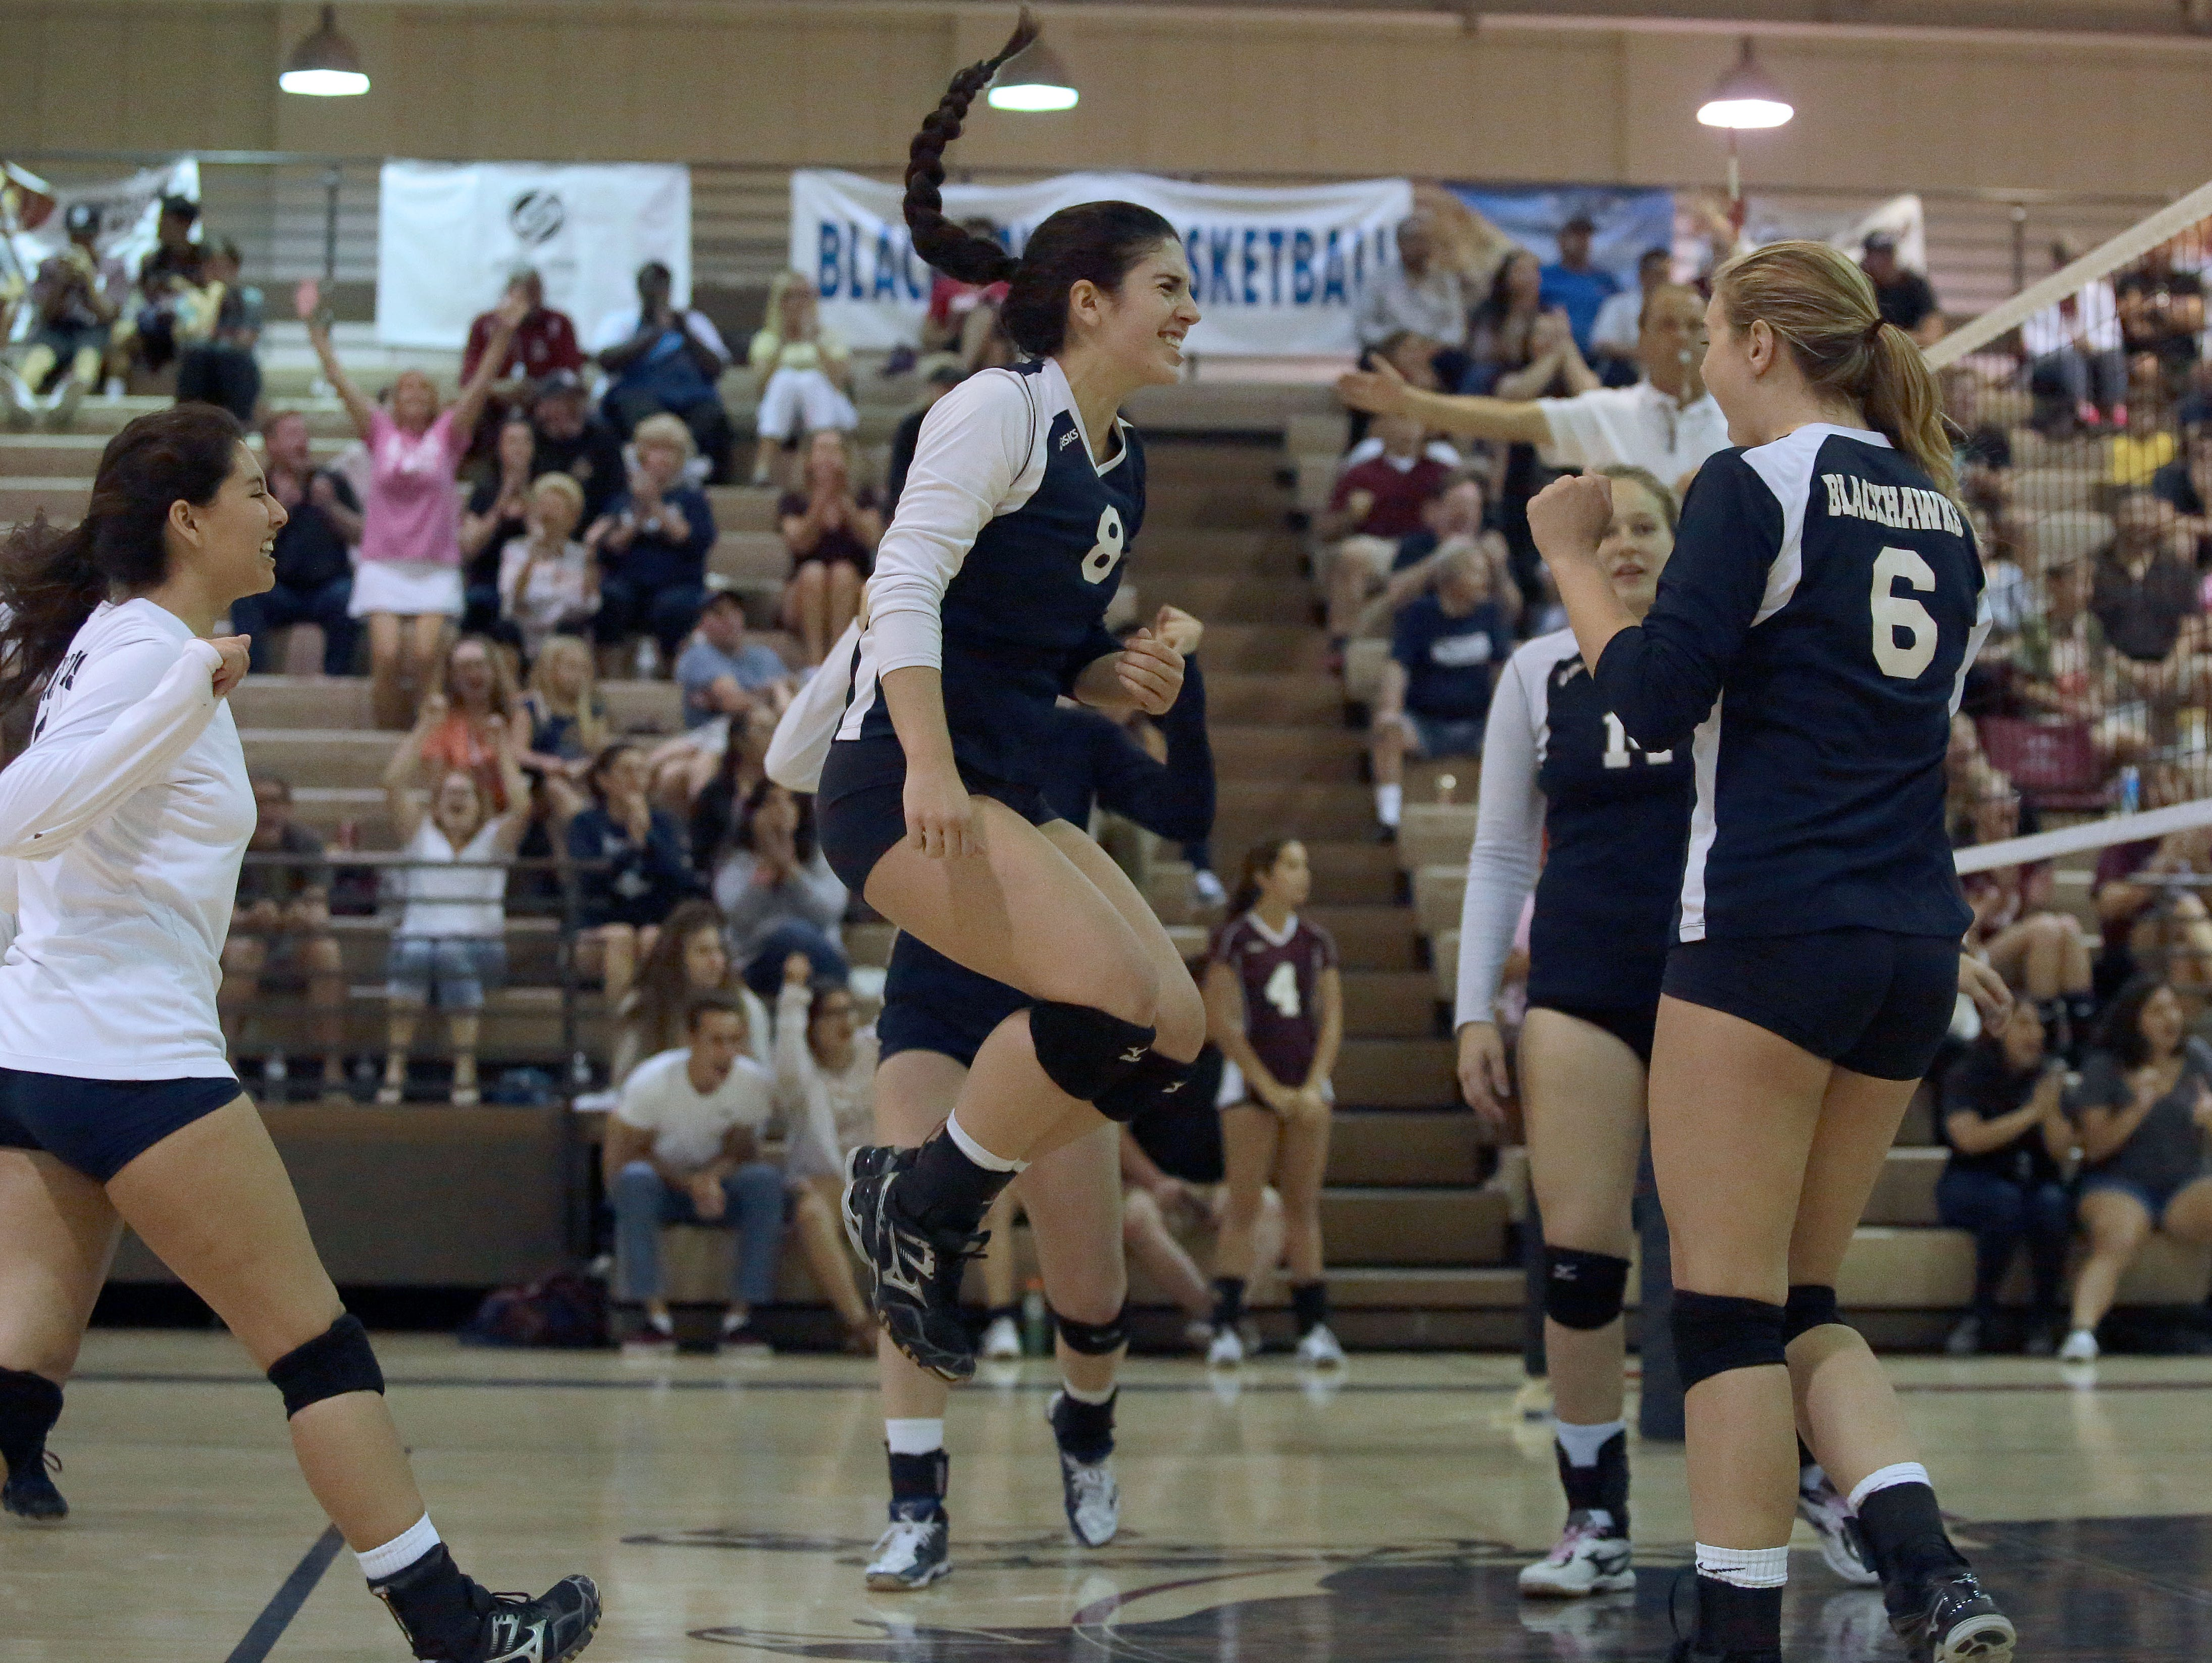 La Quinta volleyball players celebrate a hard point won from Palm Springs in the 3rd set against Palm Springs on Thursday. La Quinta won the match 3 sets to 1.